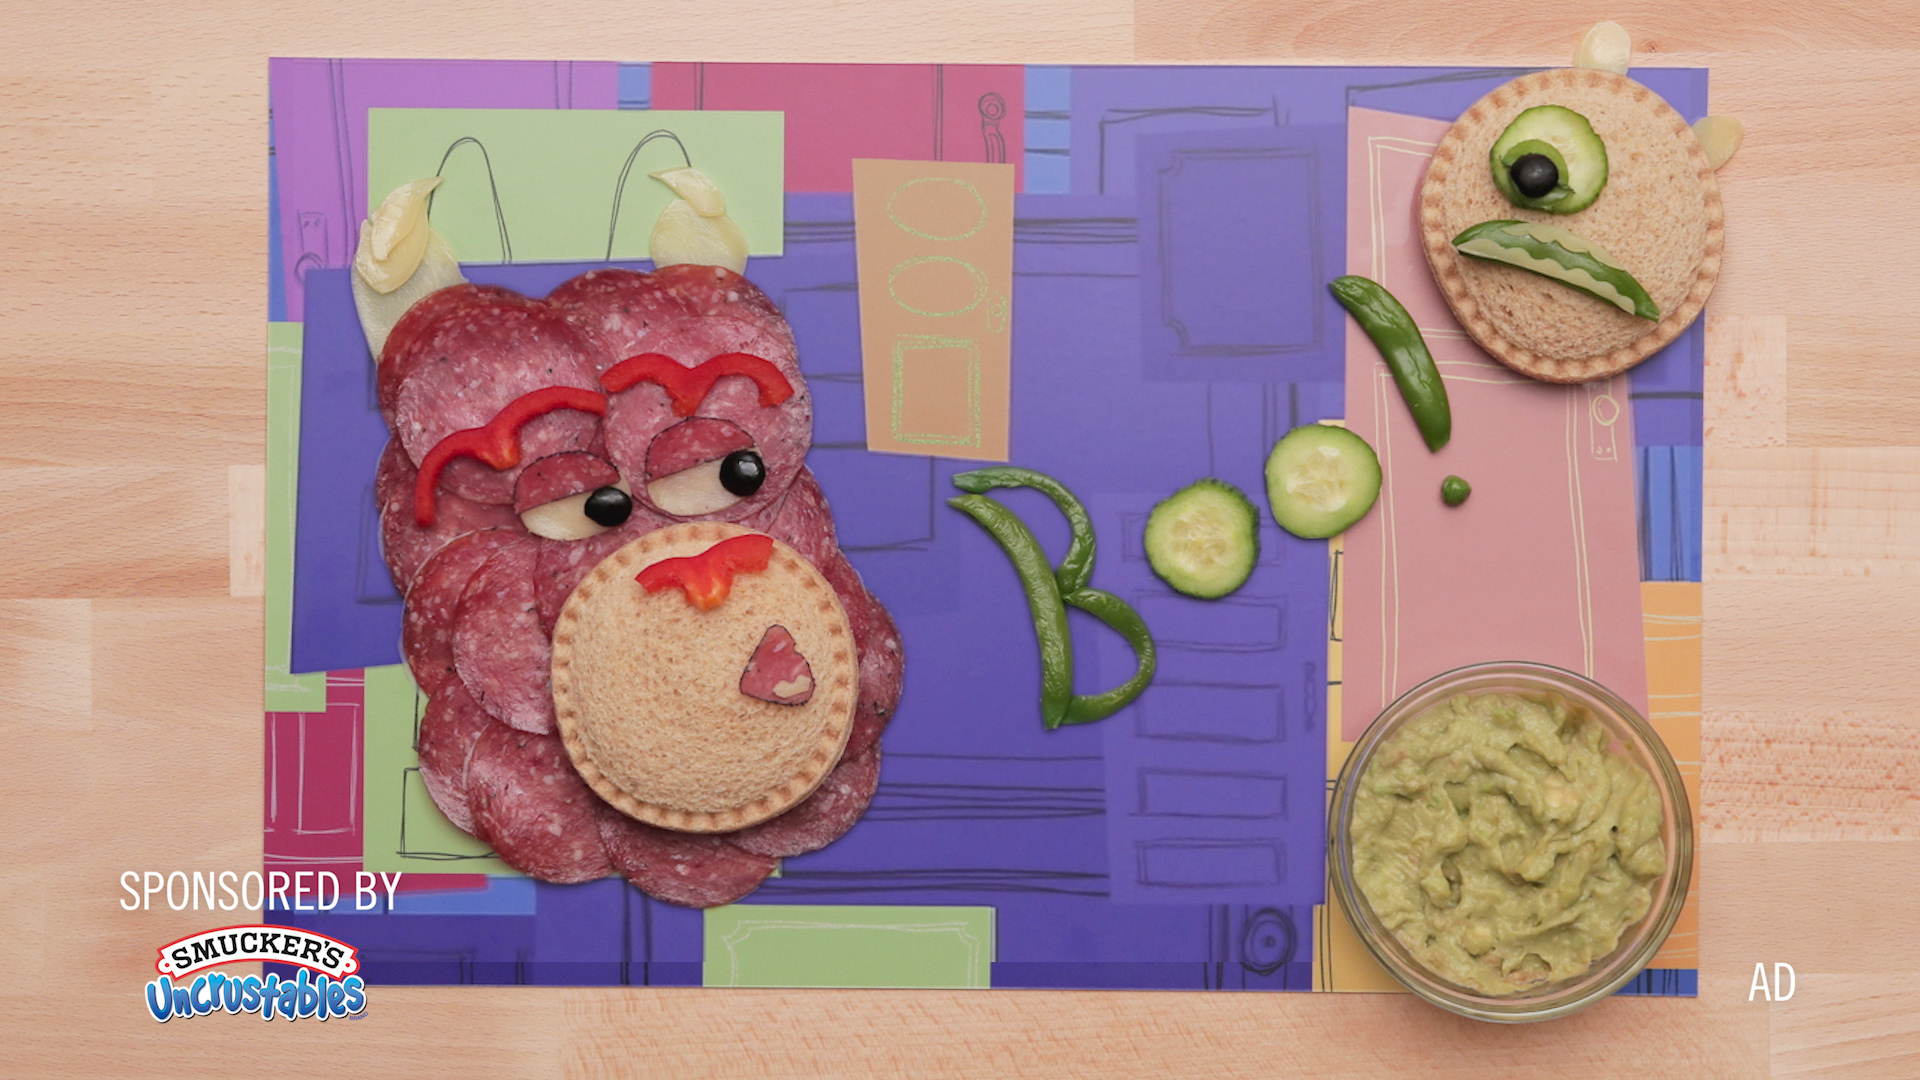 Monsters Inc - Inspired Food Art